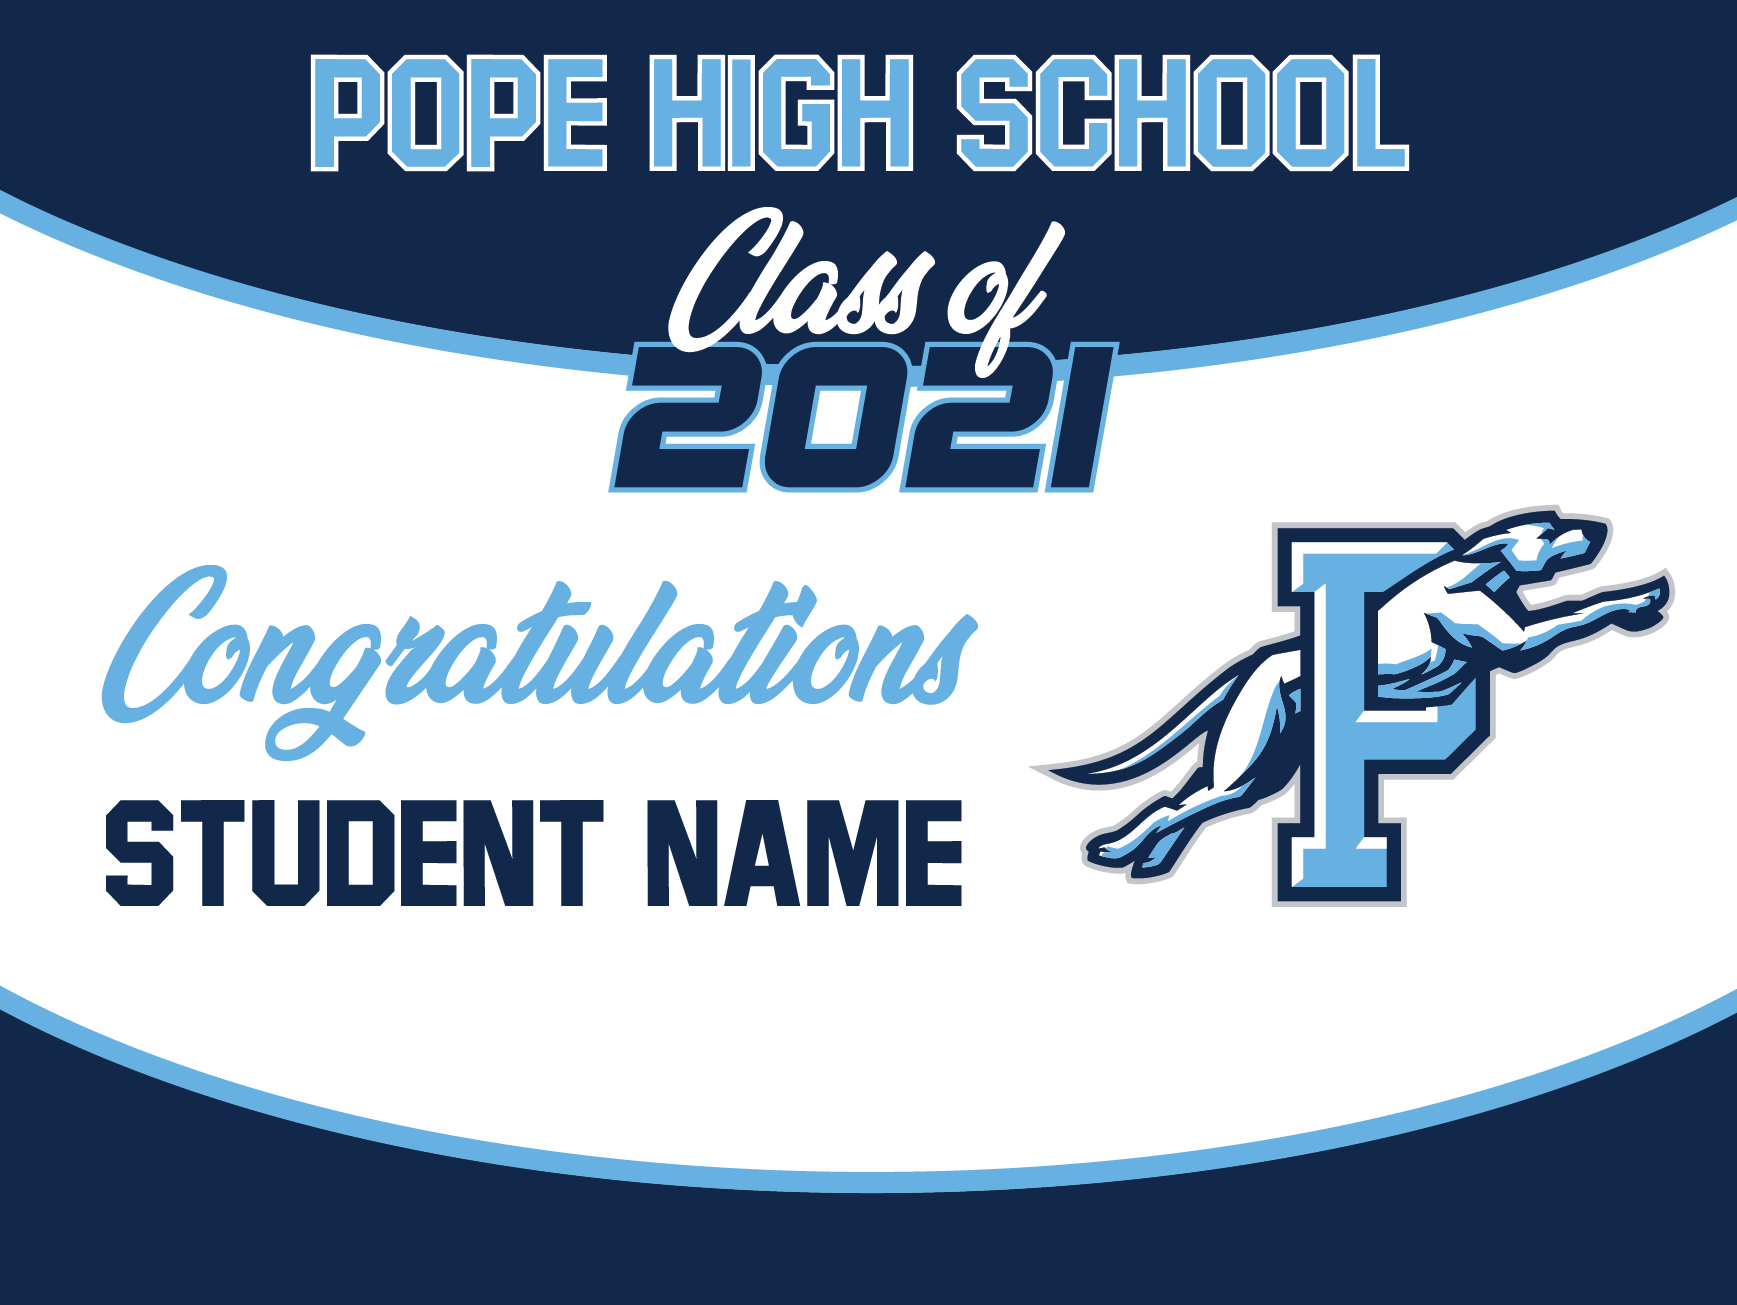 Pope High School